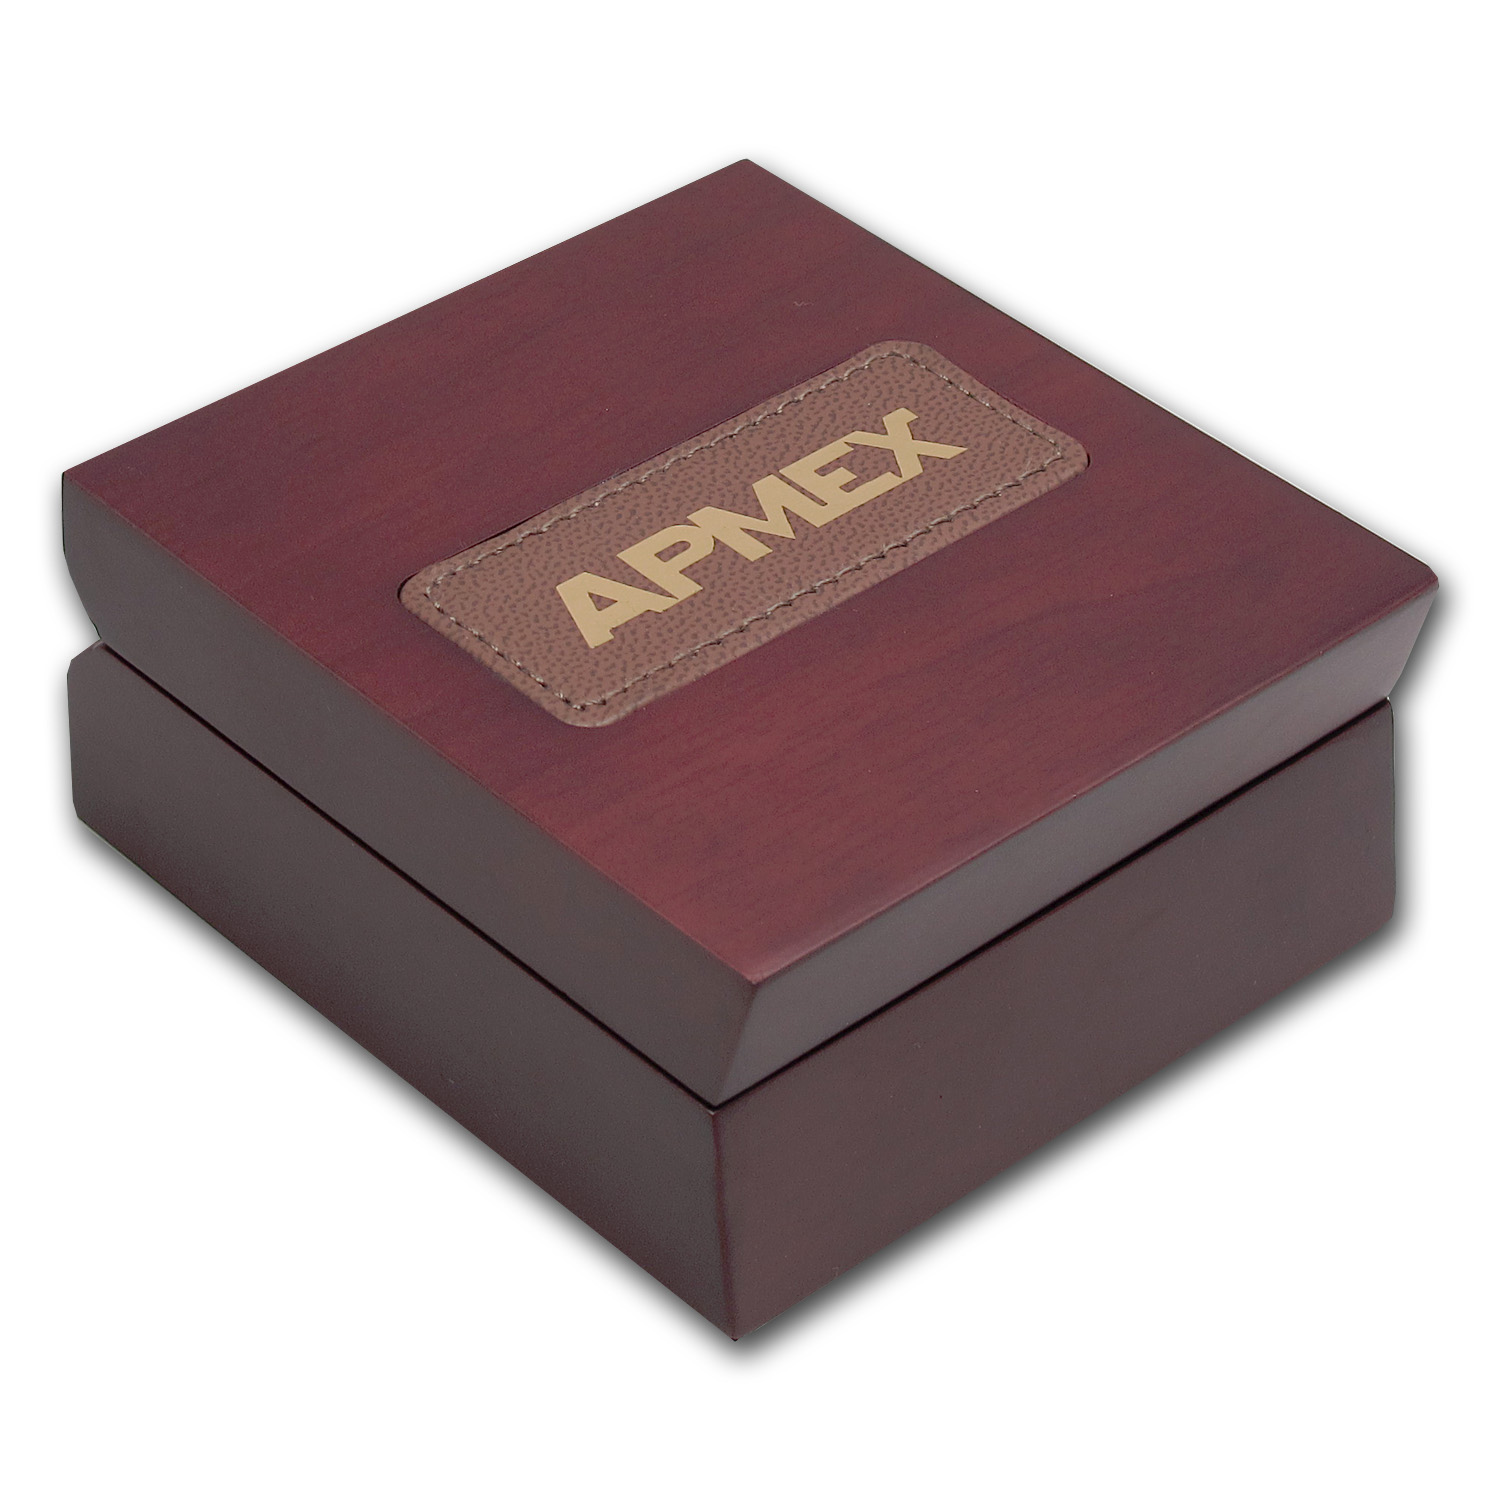 APMEX Wood Presentation Box - 1 oz & Under ASSAY Gold/Silver Bars